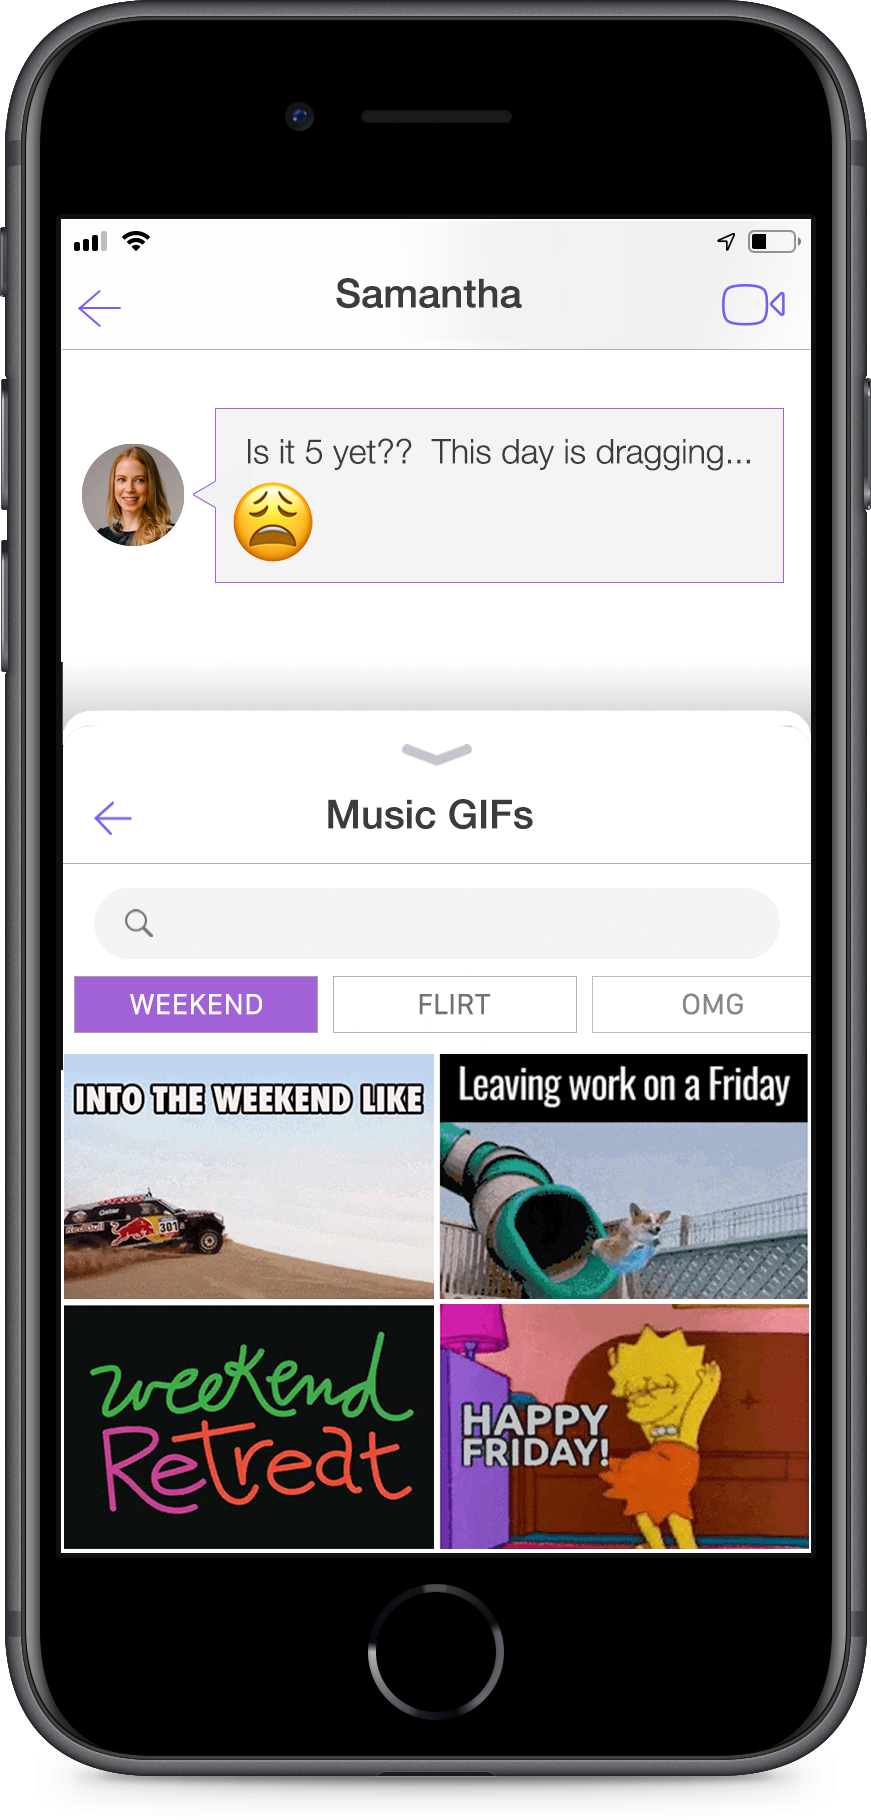 Songclip + GIF tray open in messaging chat